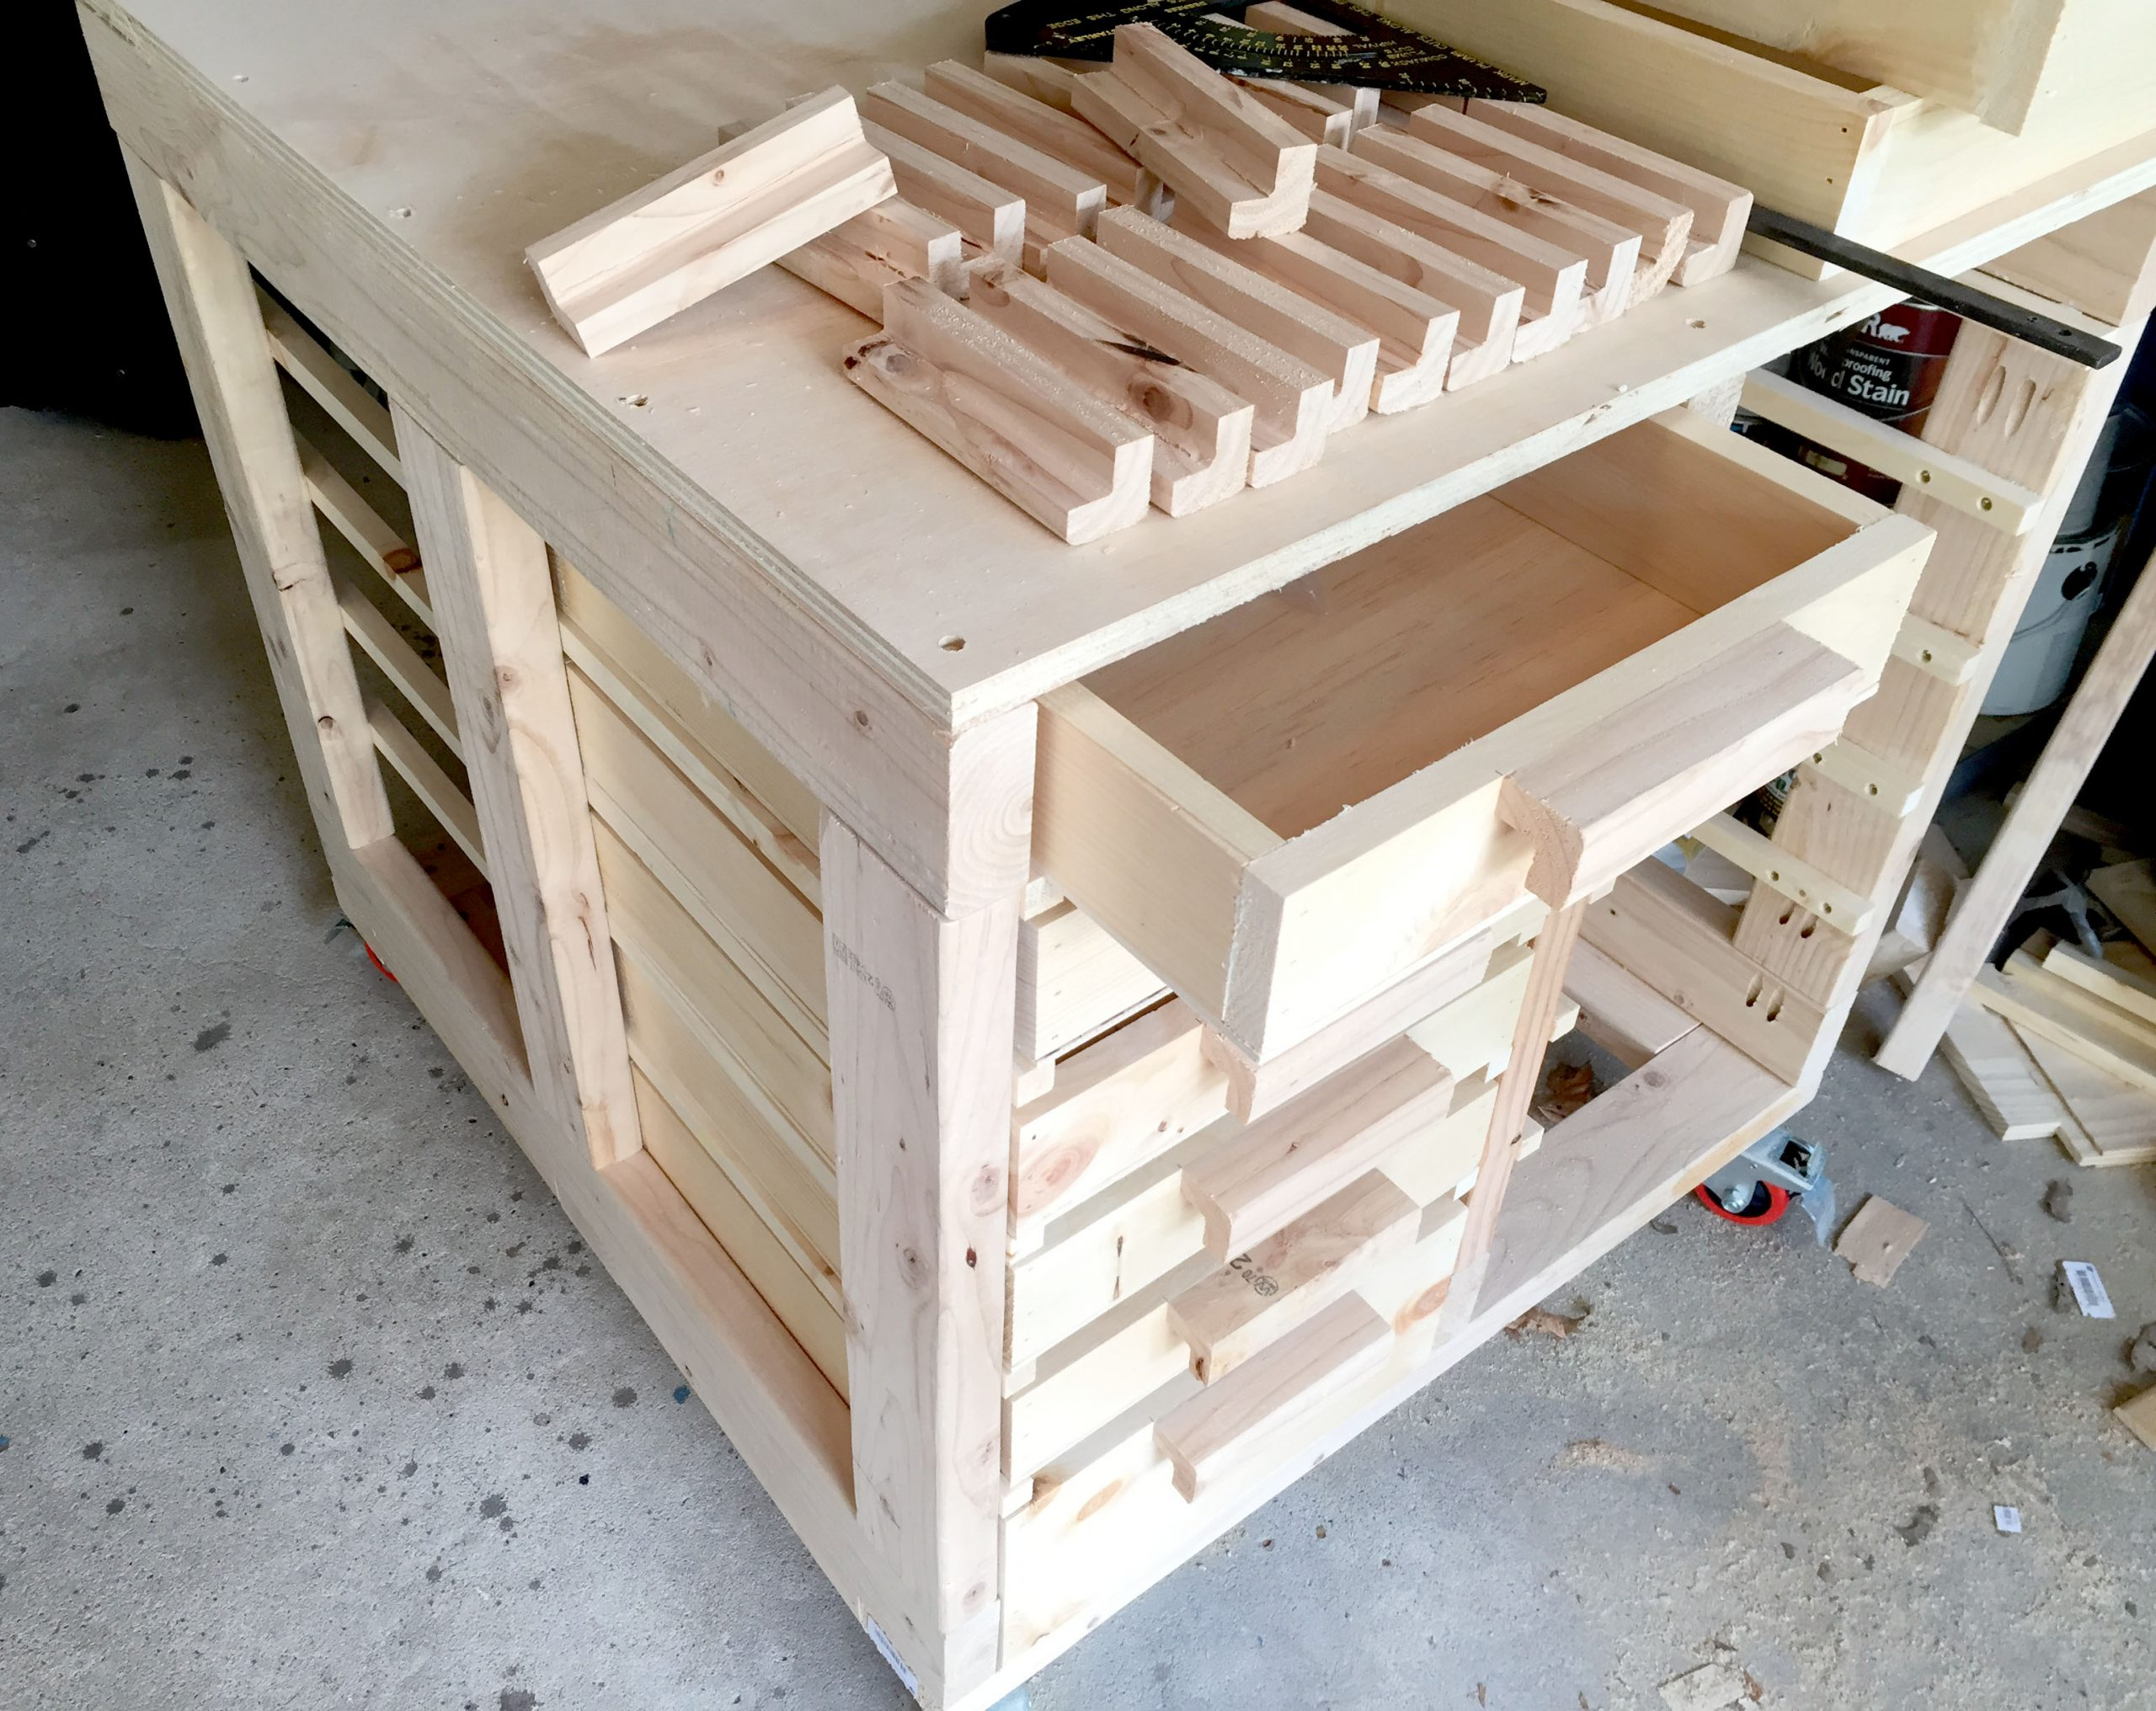 How to Make DIY Drawers with Custom Handles for your Workspace